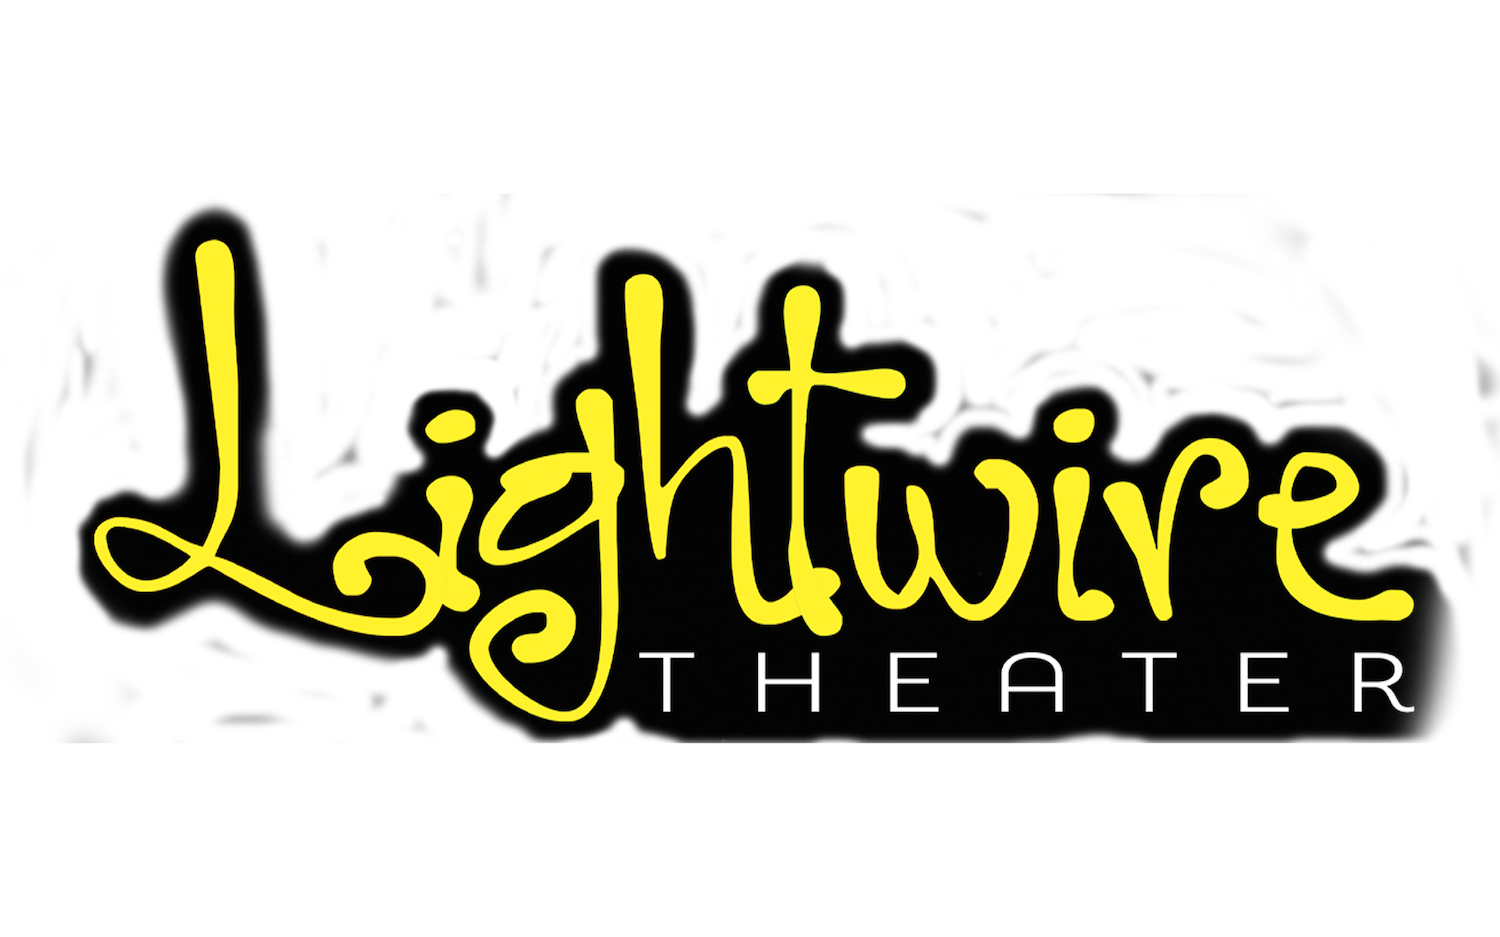 Lightwire Theater